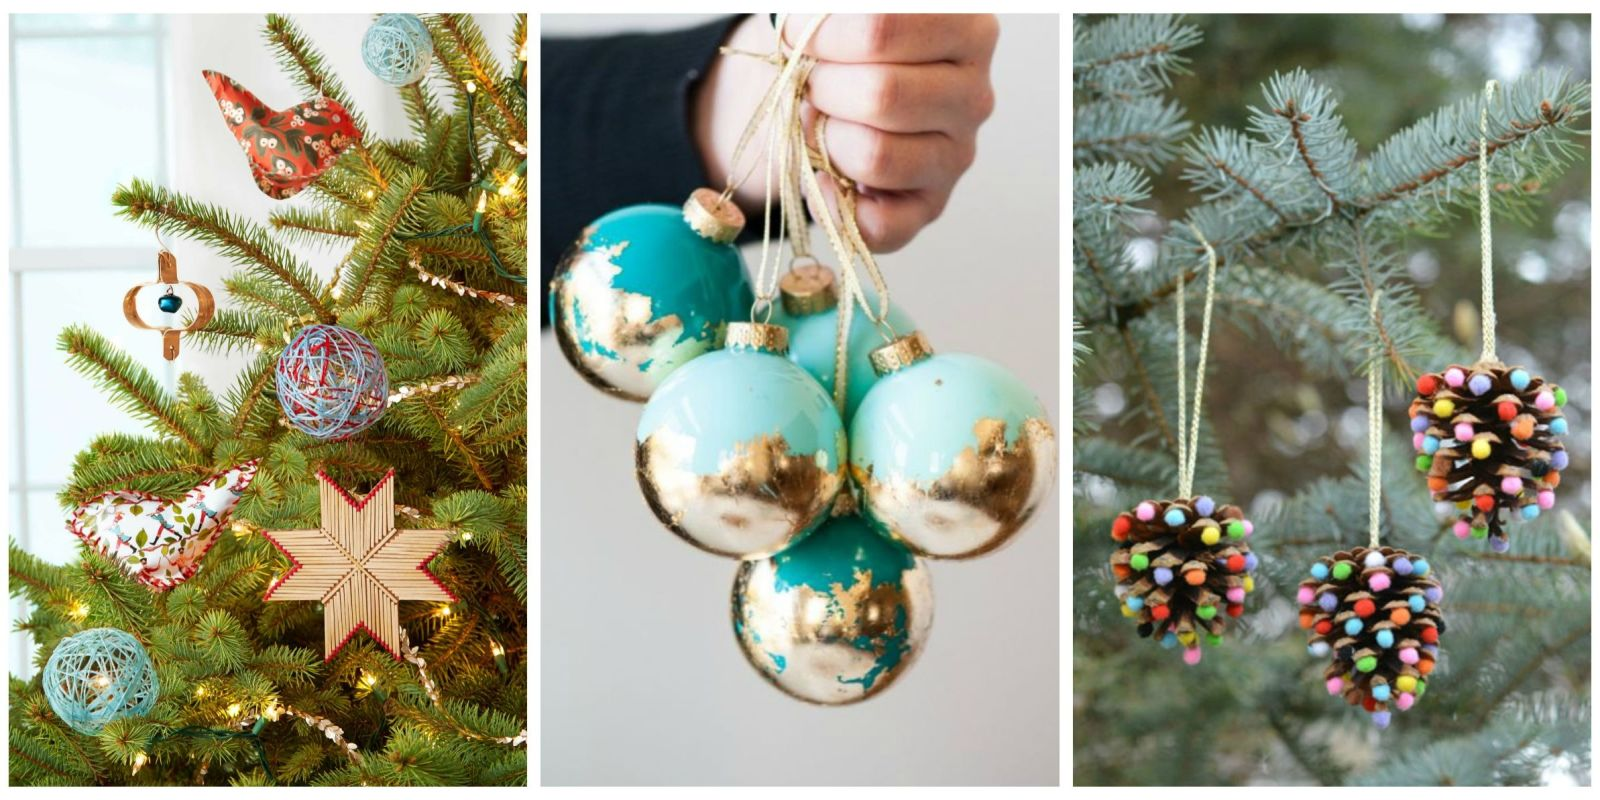 32 homemade diy christmas ornament craft ideas how to for Christmas decorations easy to make at home